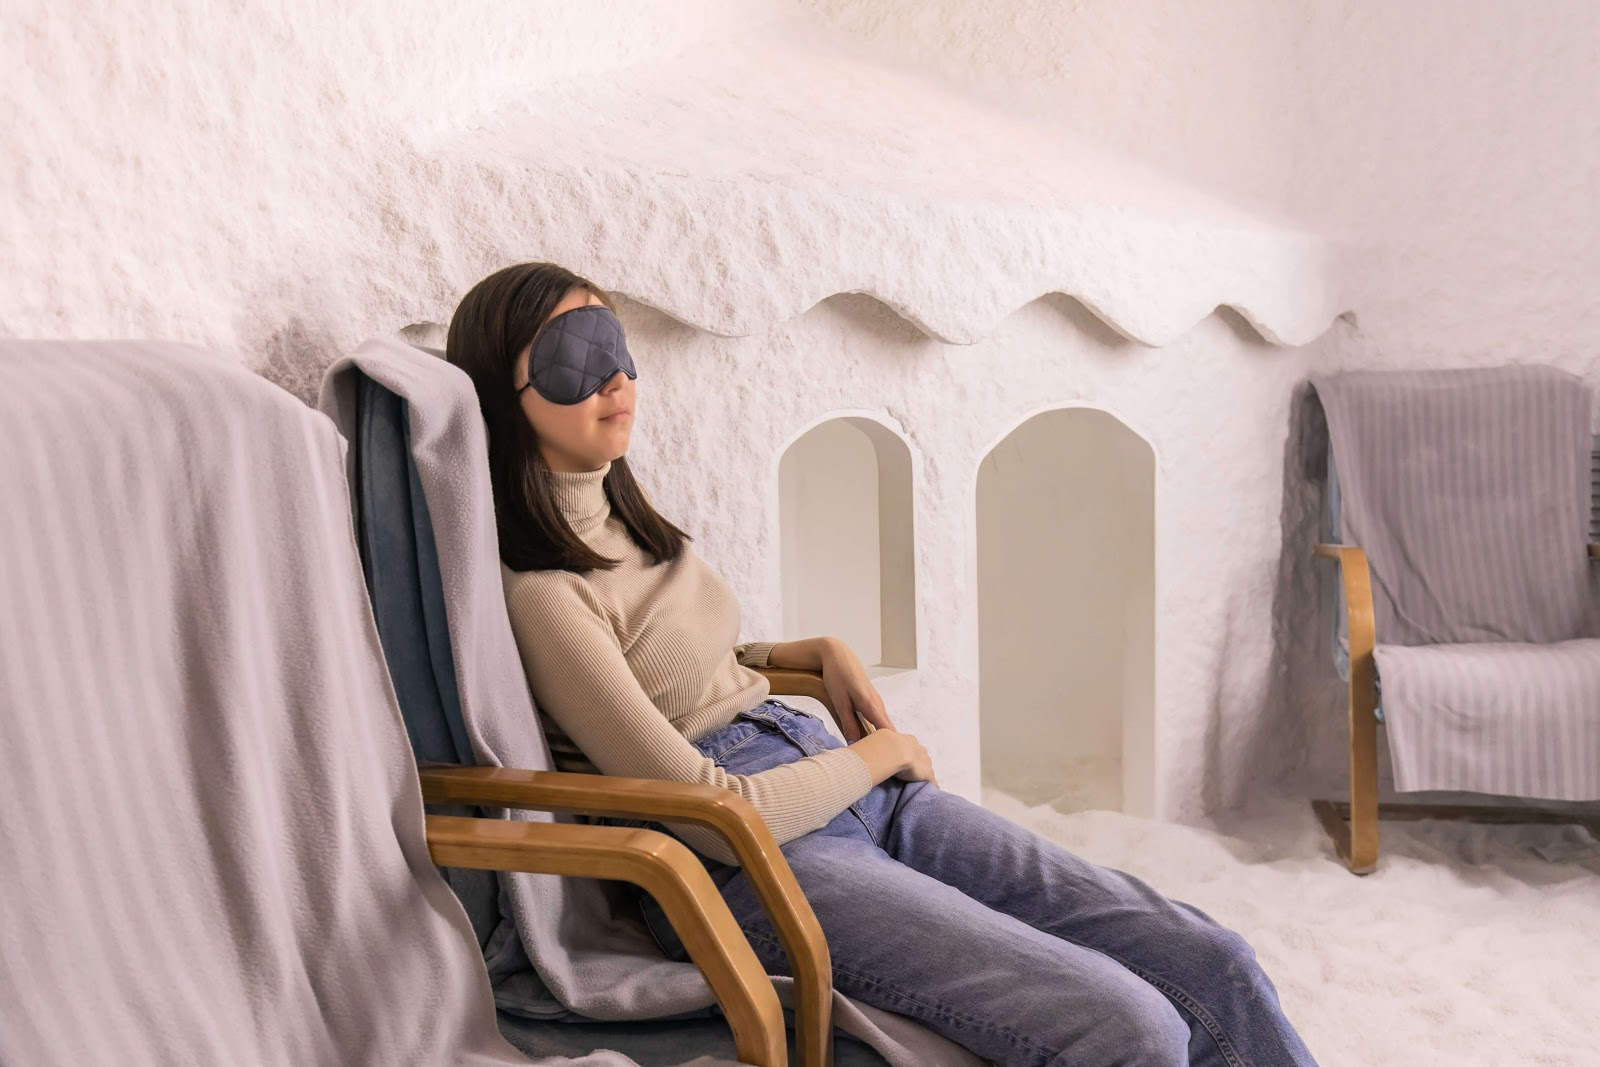 Woman sleeping with eye bask on in a salt room